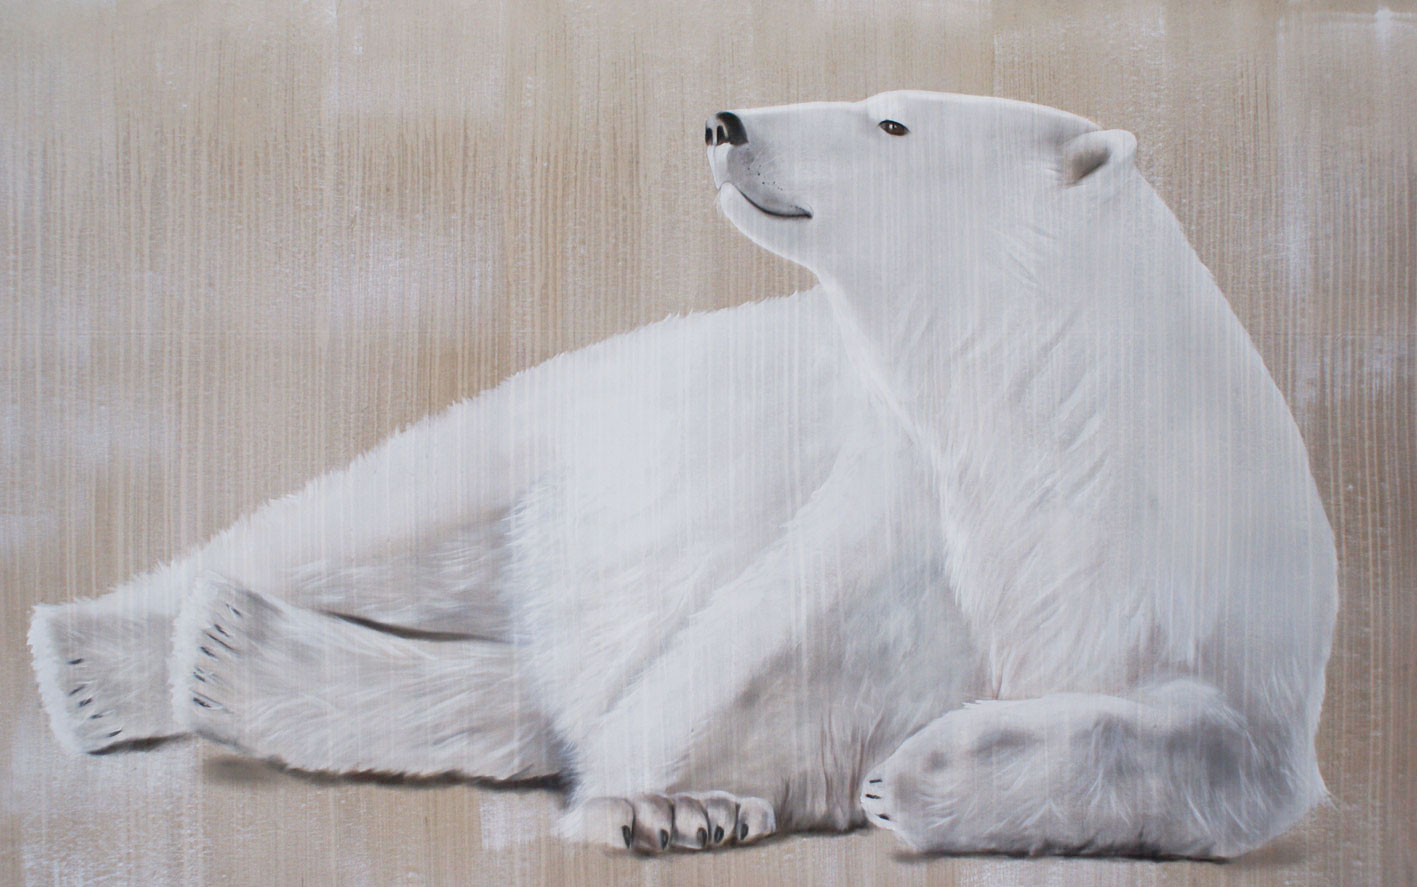 RELAXING-POLAR-BEAR-2 polar-bear-white-deco-decoration-large-size-printed-canvas-luxury-high-quality Thierry Bisch painter animals painting art decoration hotel design interior luxury nature biodiversity conservation